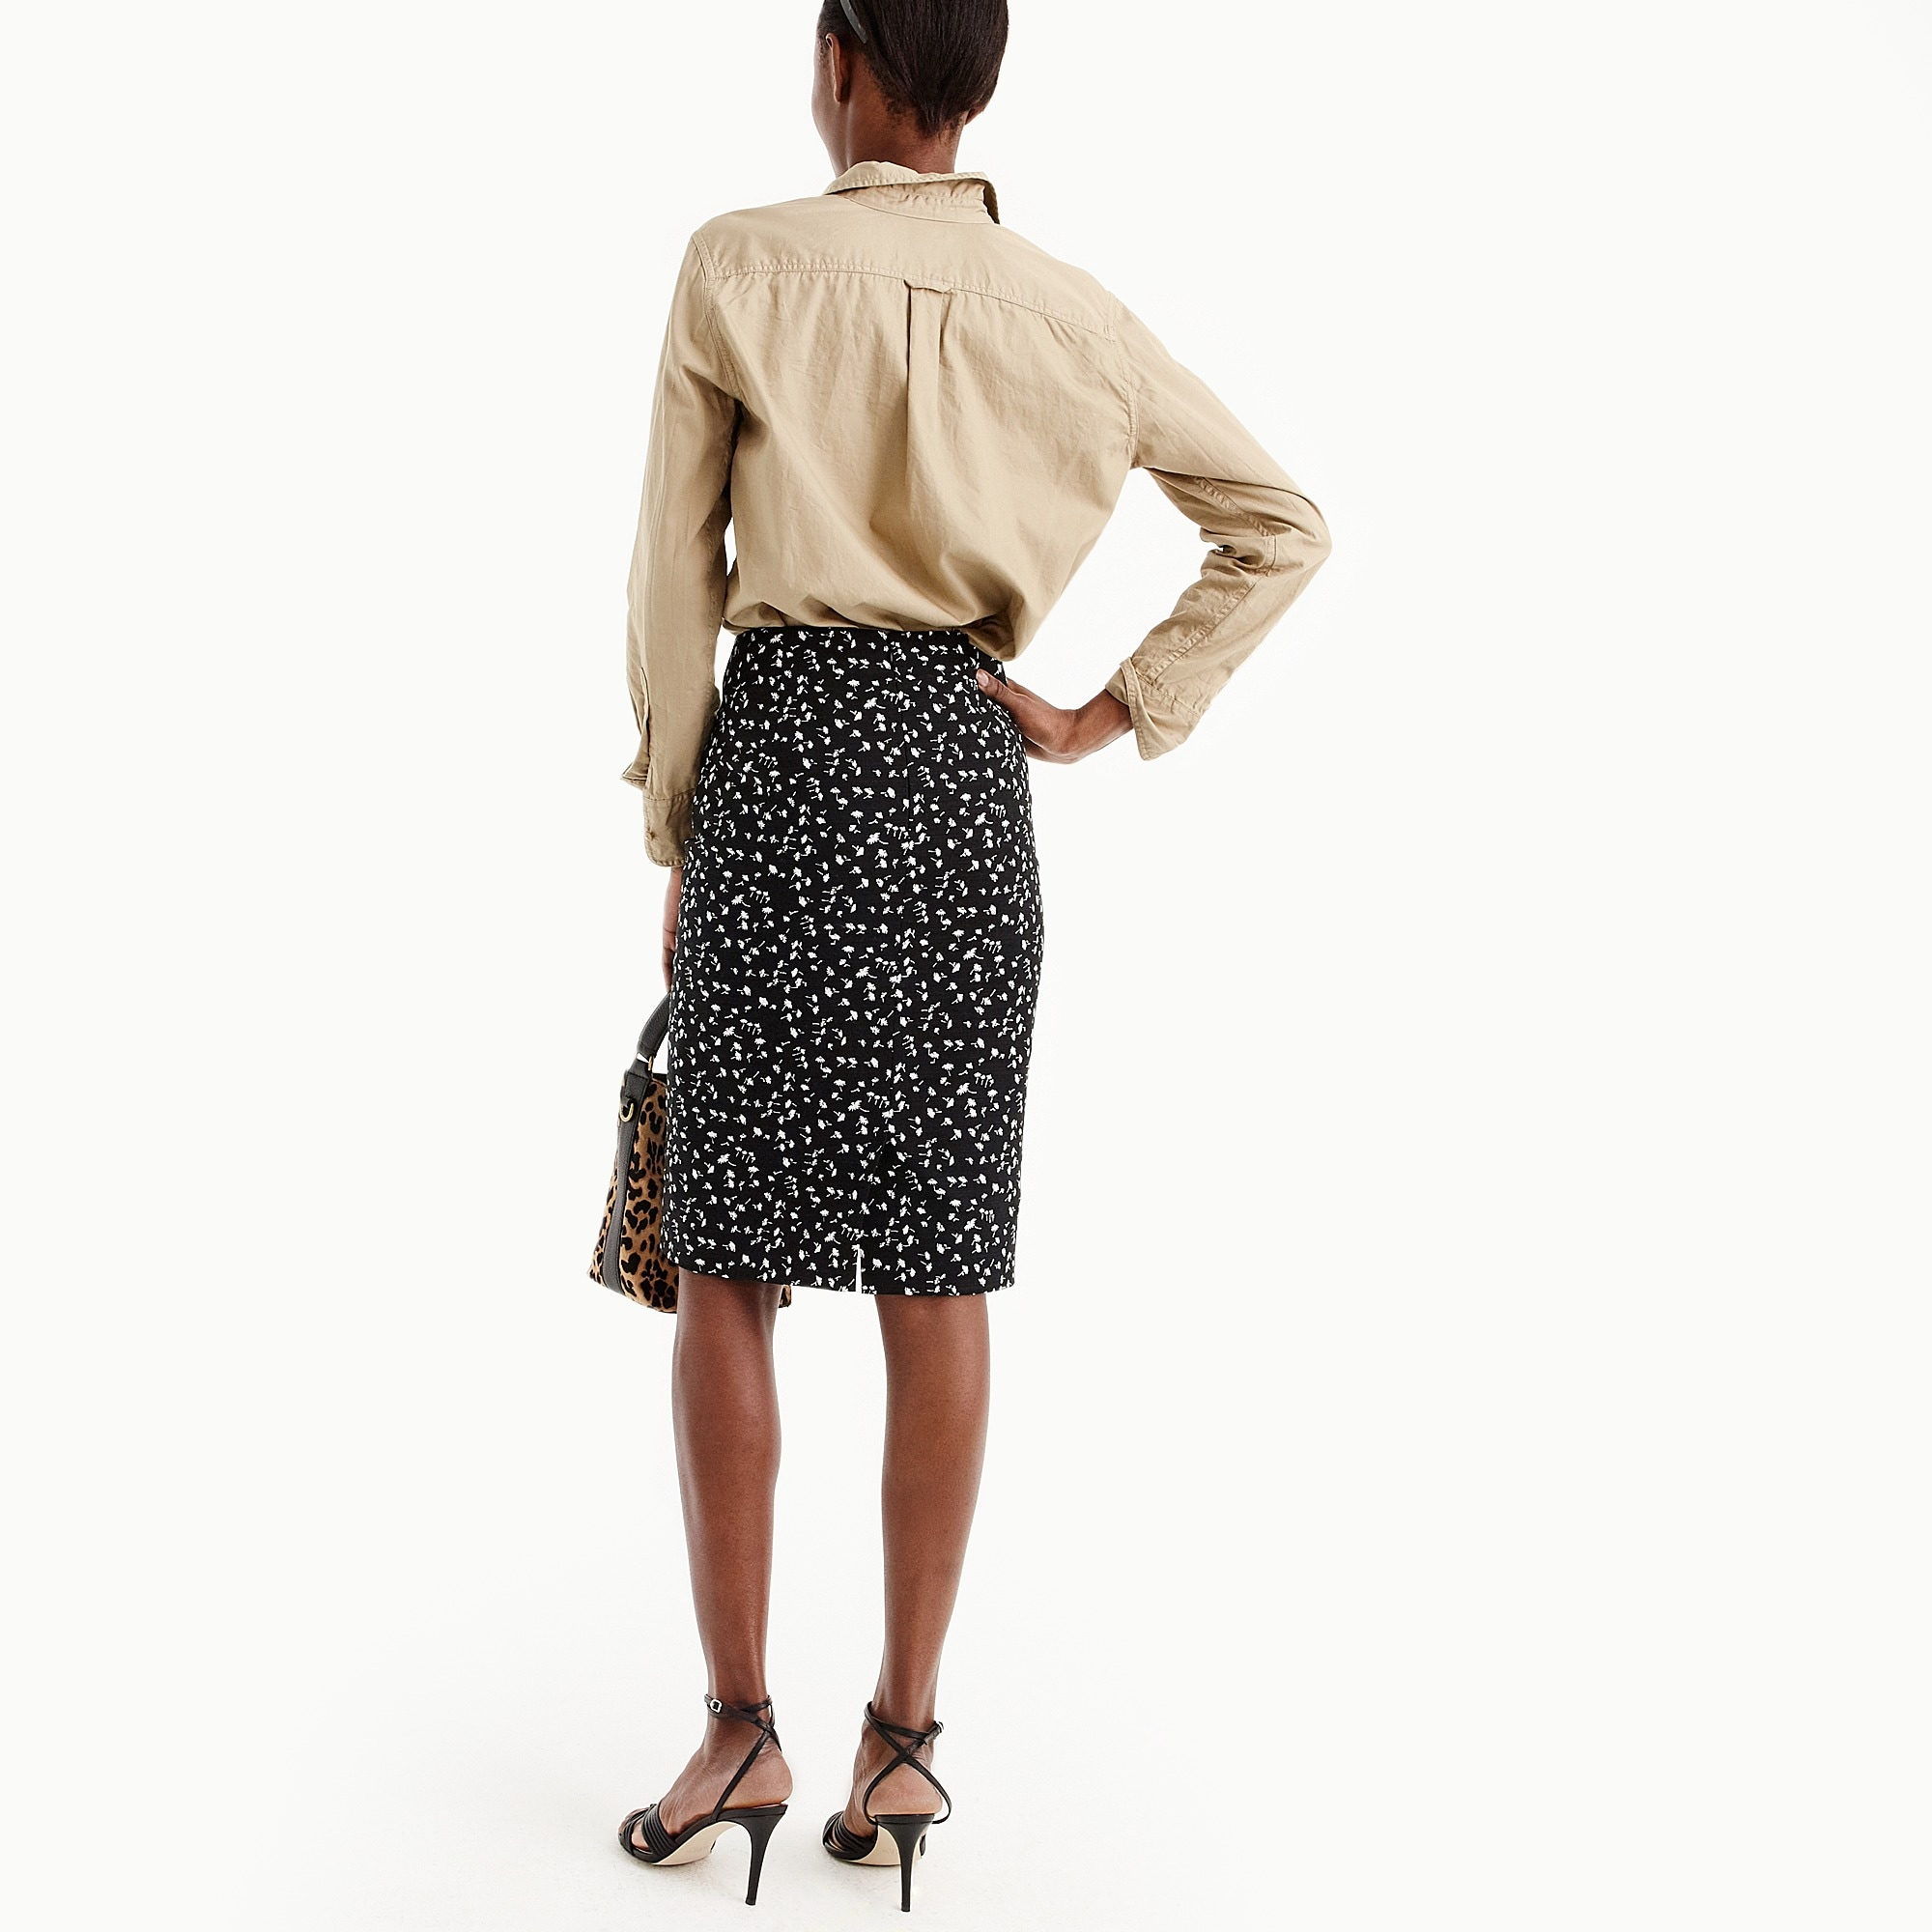 Image 3 for Tall pencil skirt in daisy floral